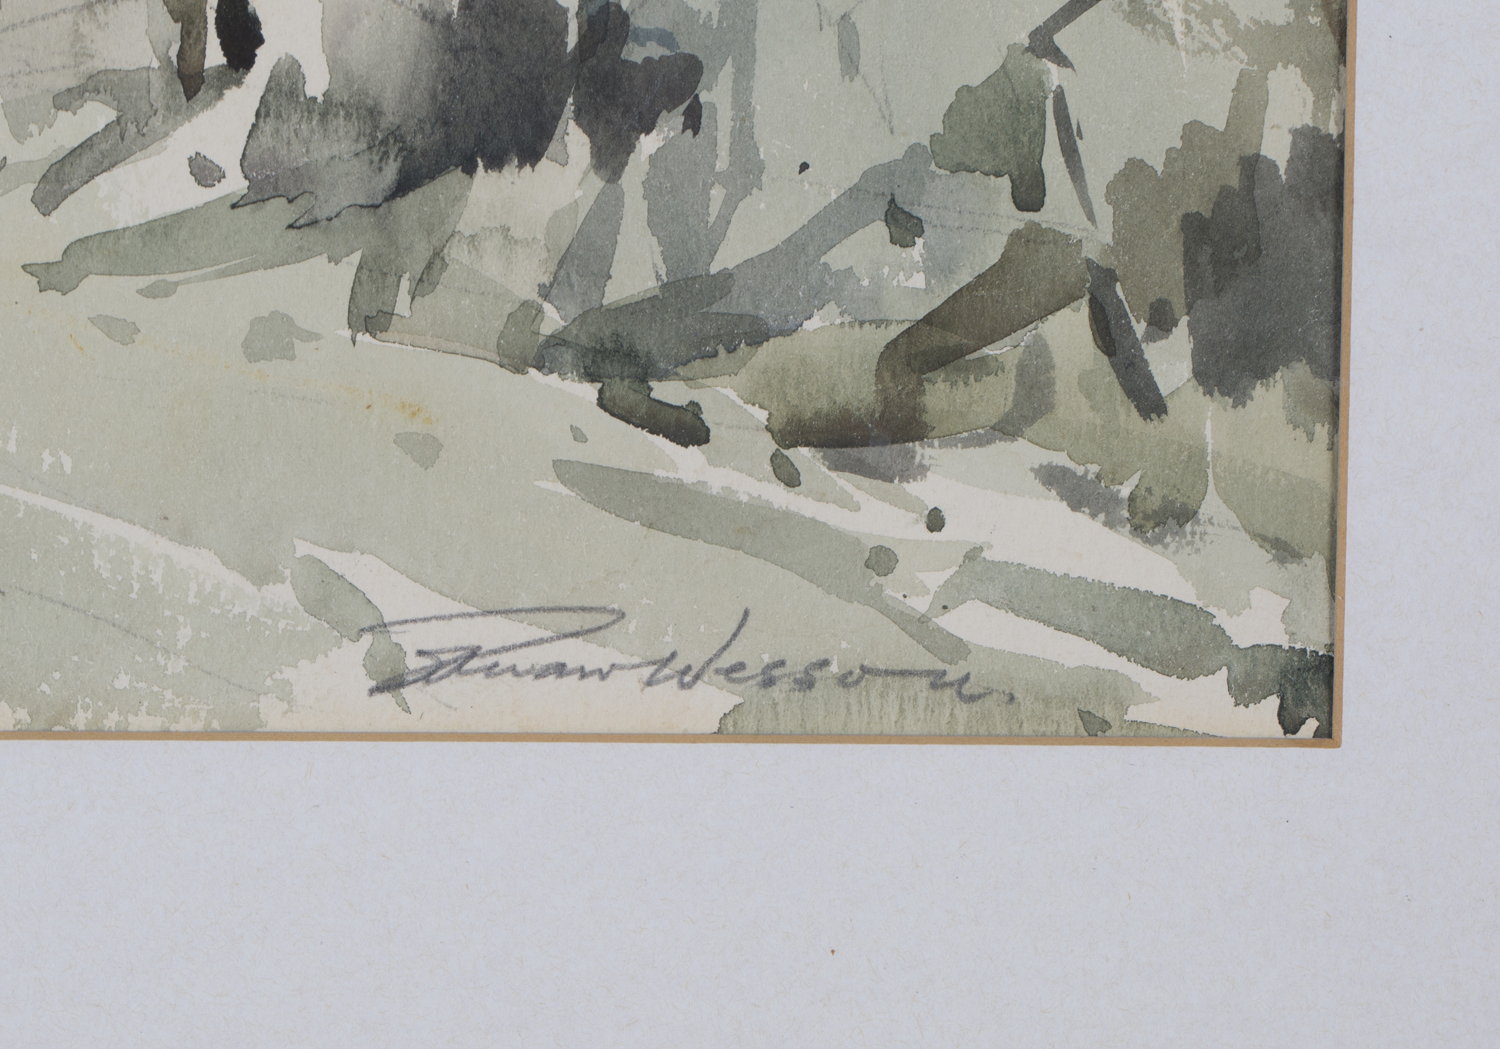 Lot 10 - Edward Wesson - Landscape with Industrial Buildings, 20th century watercolour, signed in pencil,